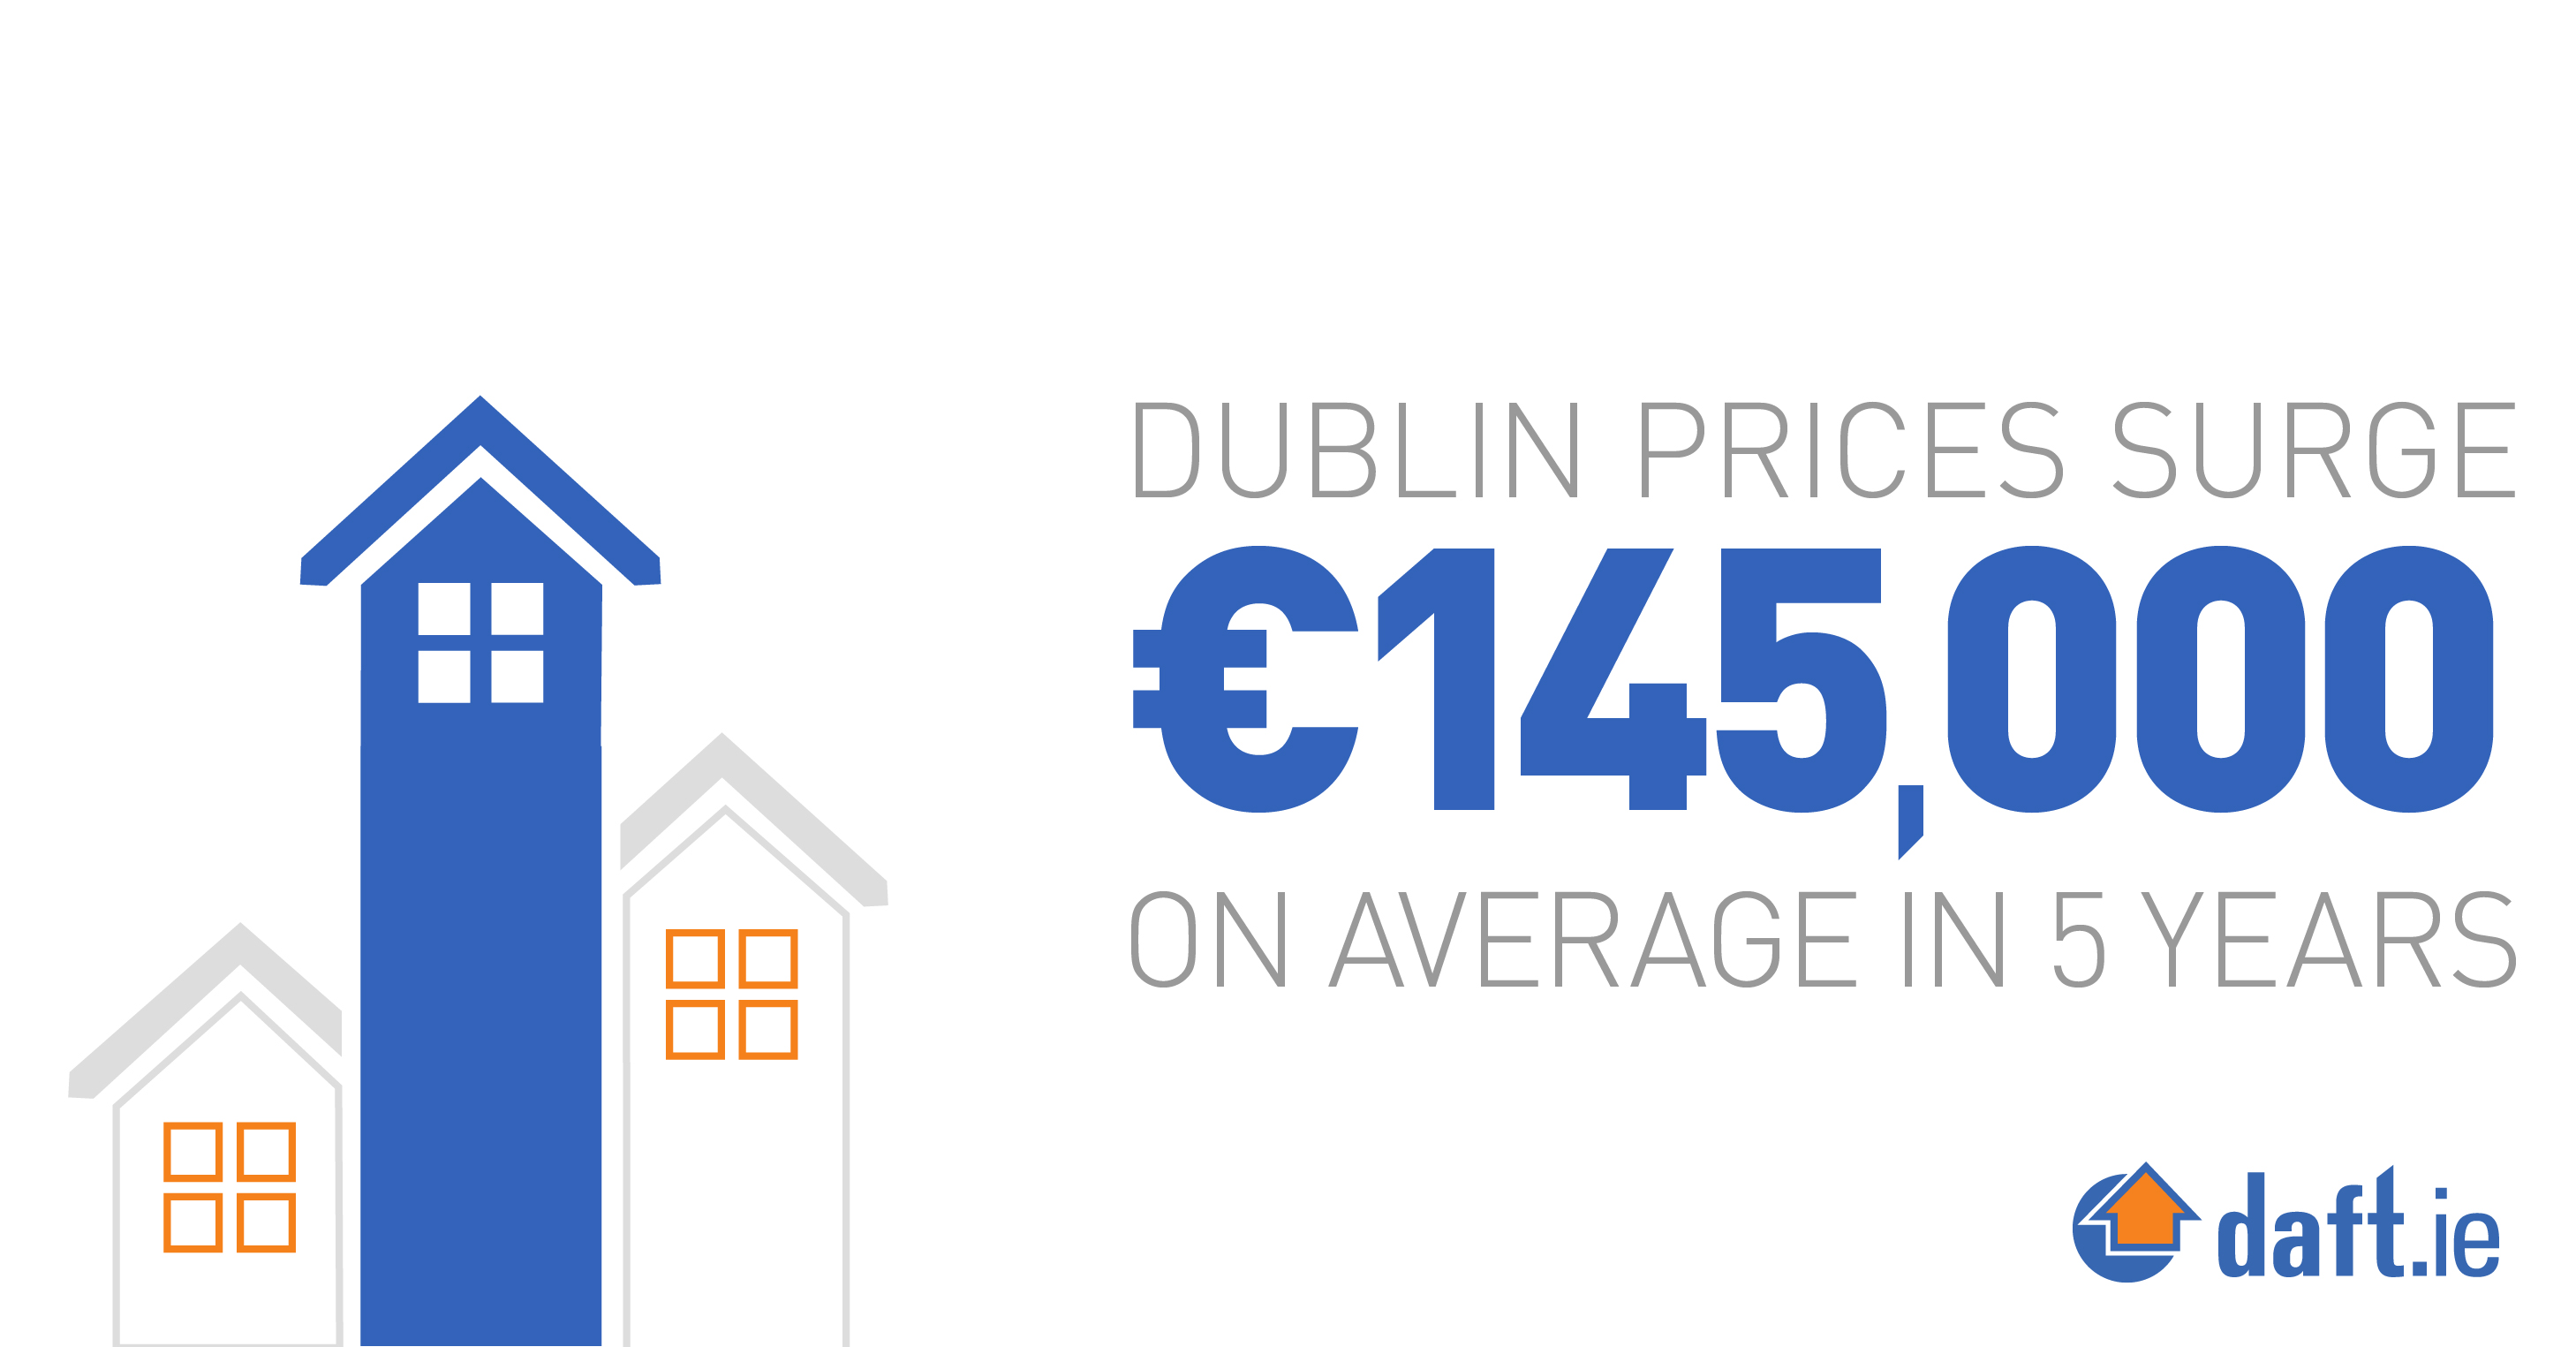 Dublin prices surge €145,000 on average in 5 years